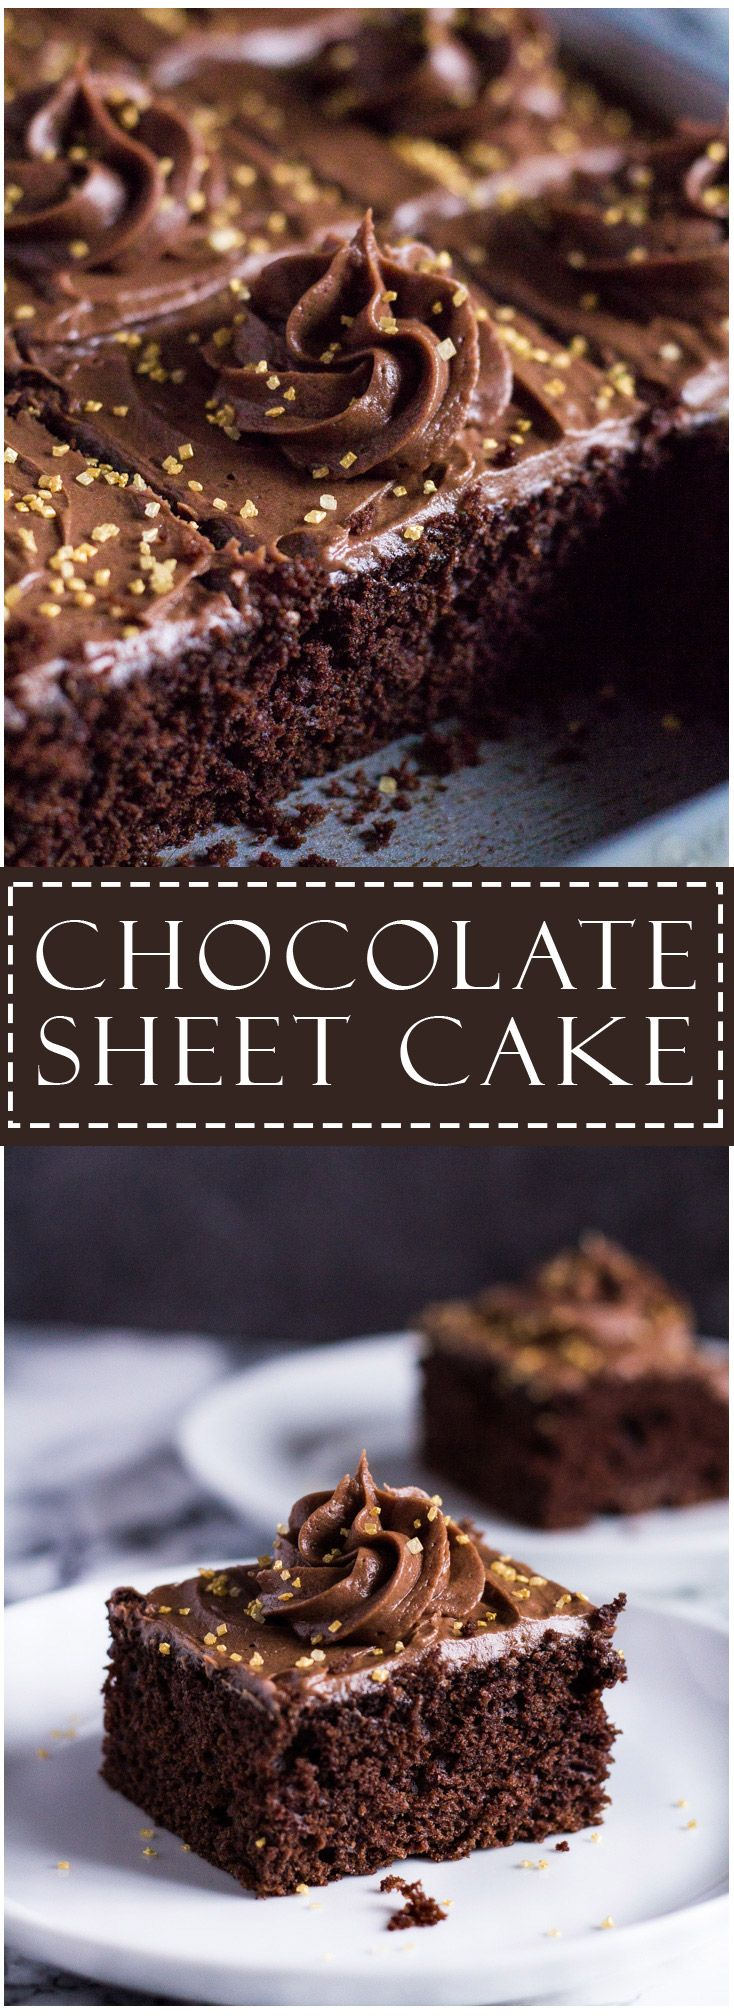 Chocolate Sheet Cake | marshasbakingaddiction.com @marshasbakeblog